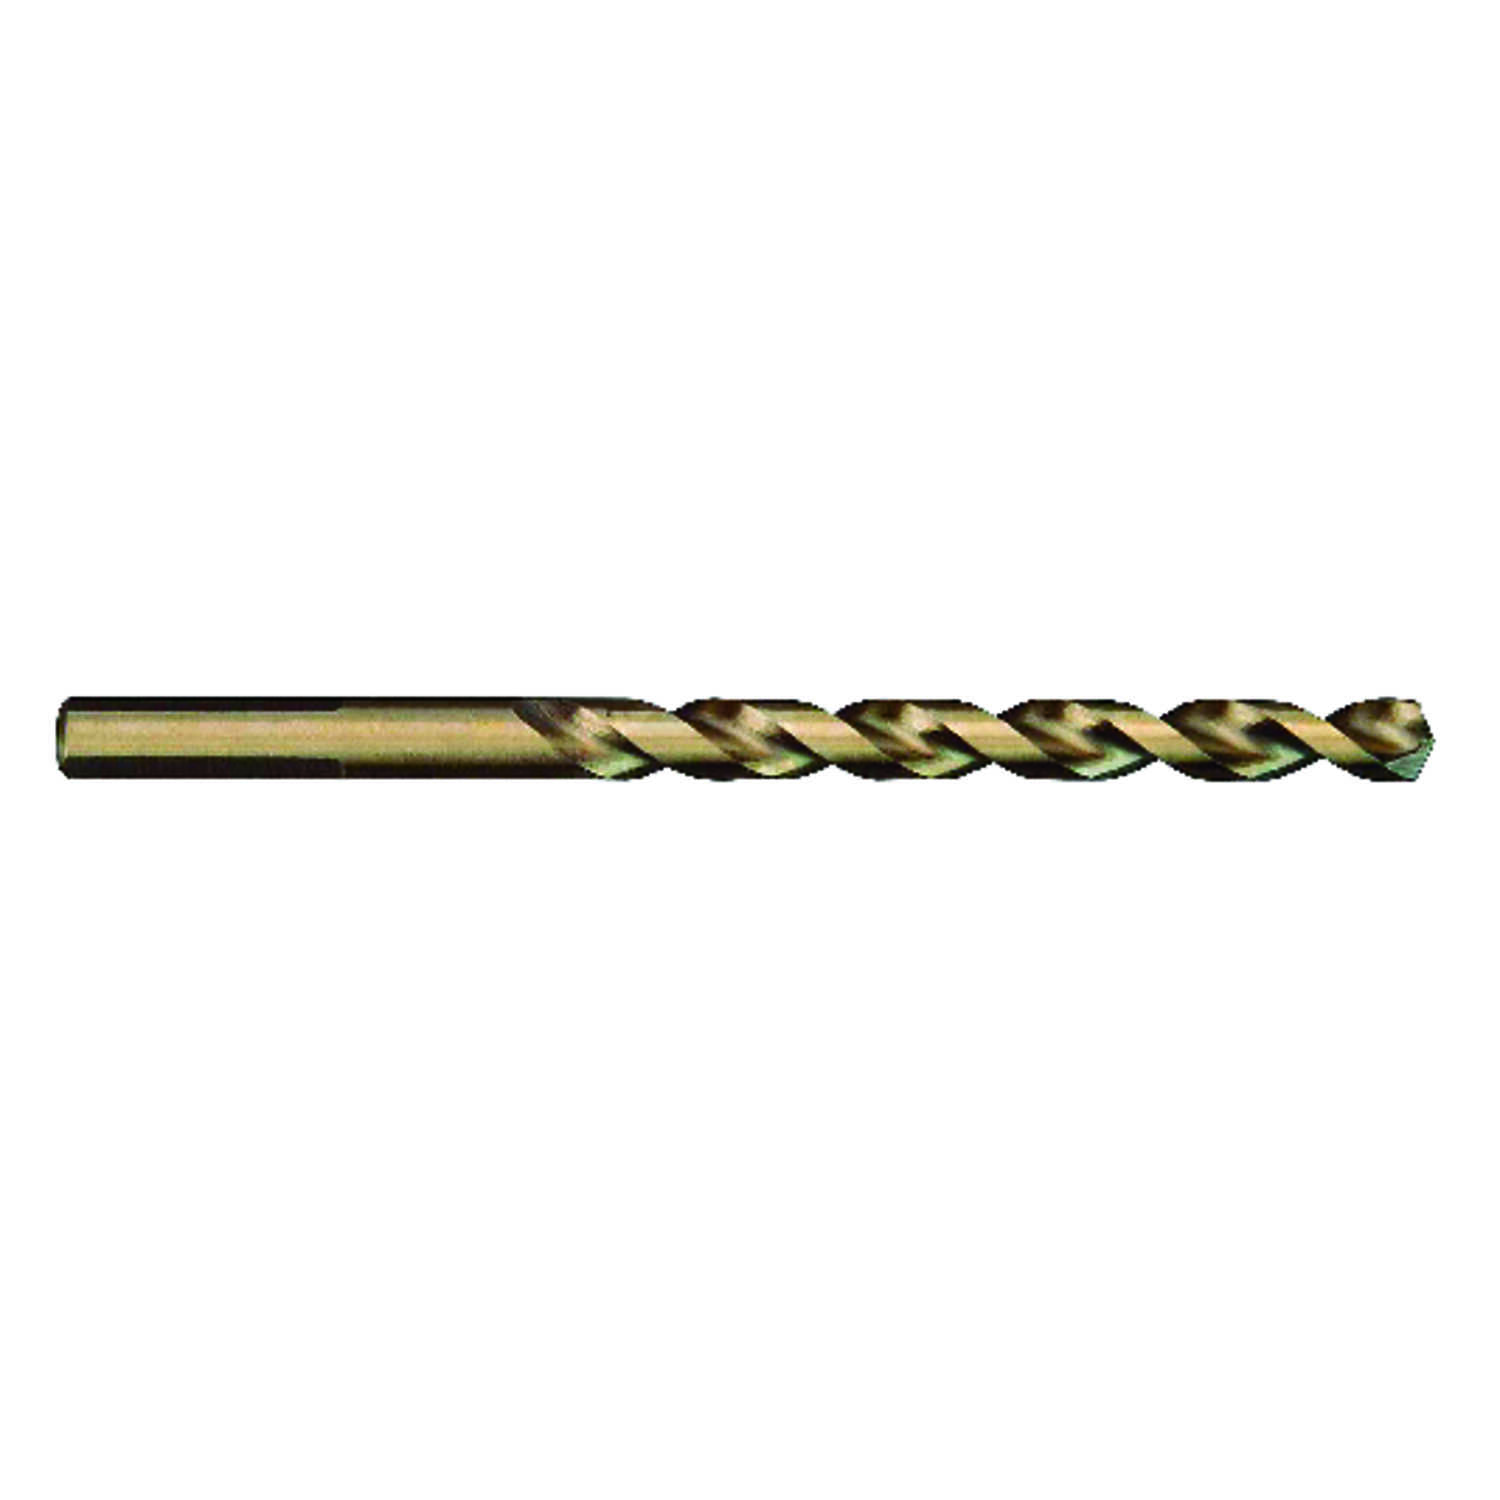 Milwaukee  RED HELIX  1/8 in. Dia. x 2-3/4 in. L Cobalt Steel  THUNDERBOLT  Drill Bit  Round Shank